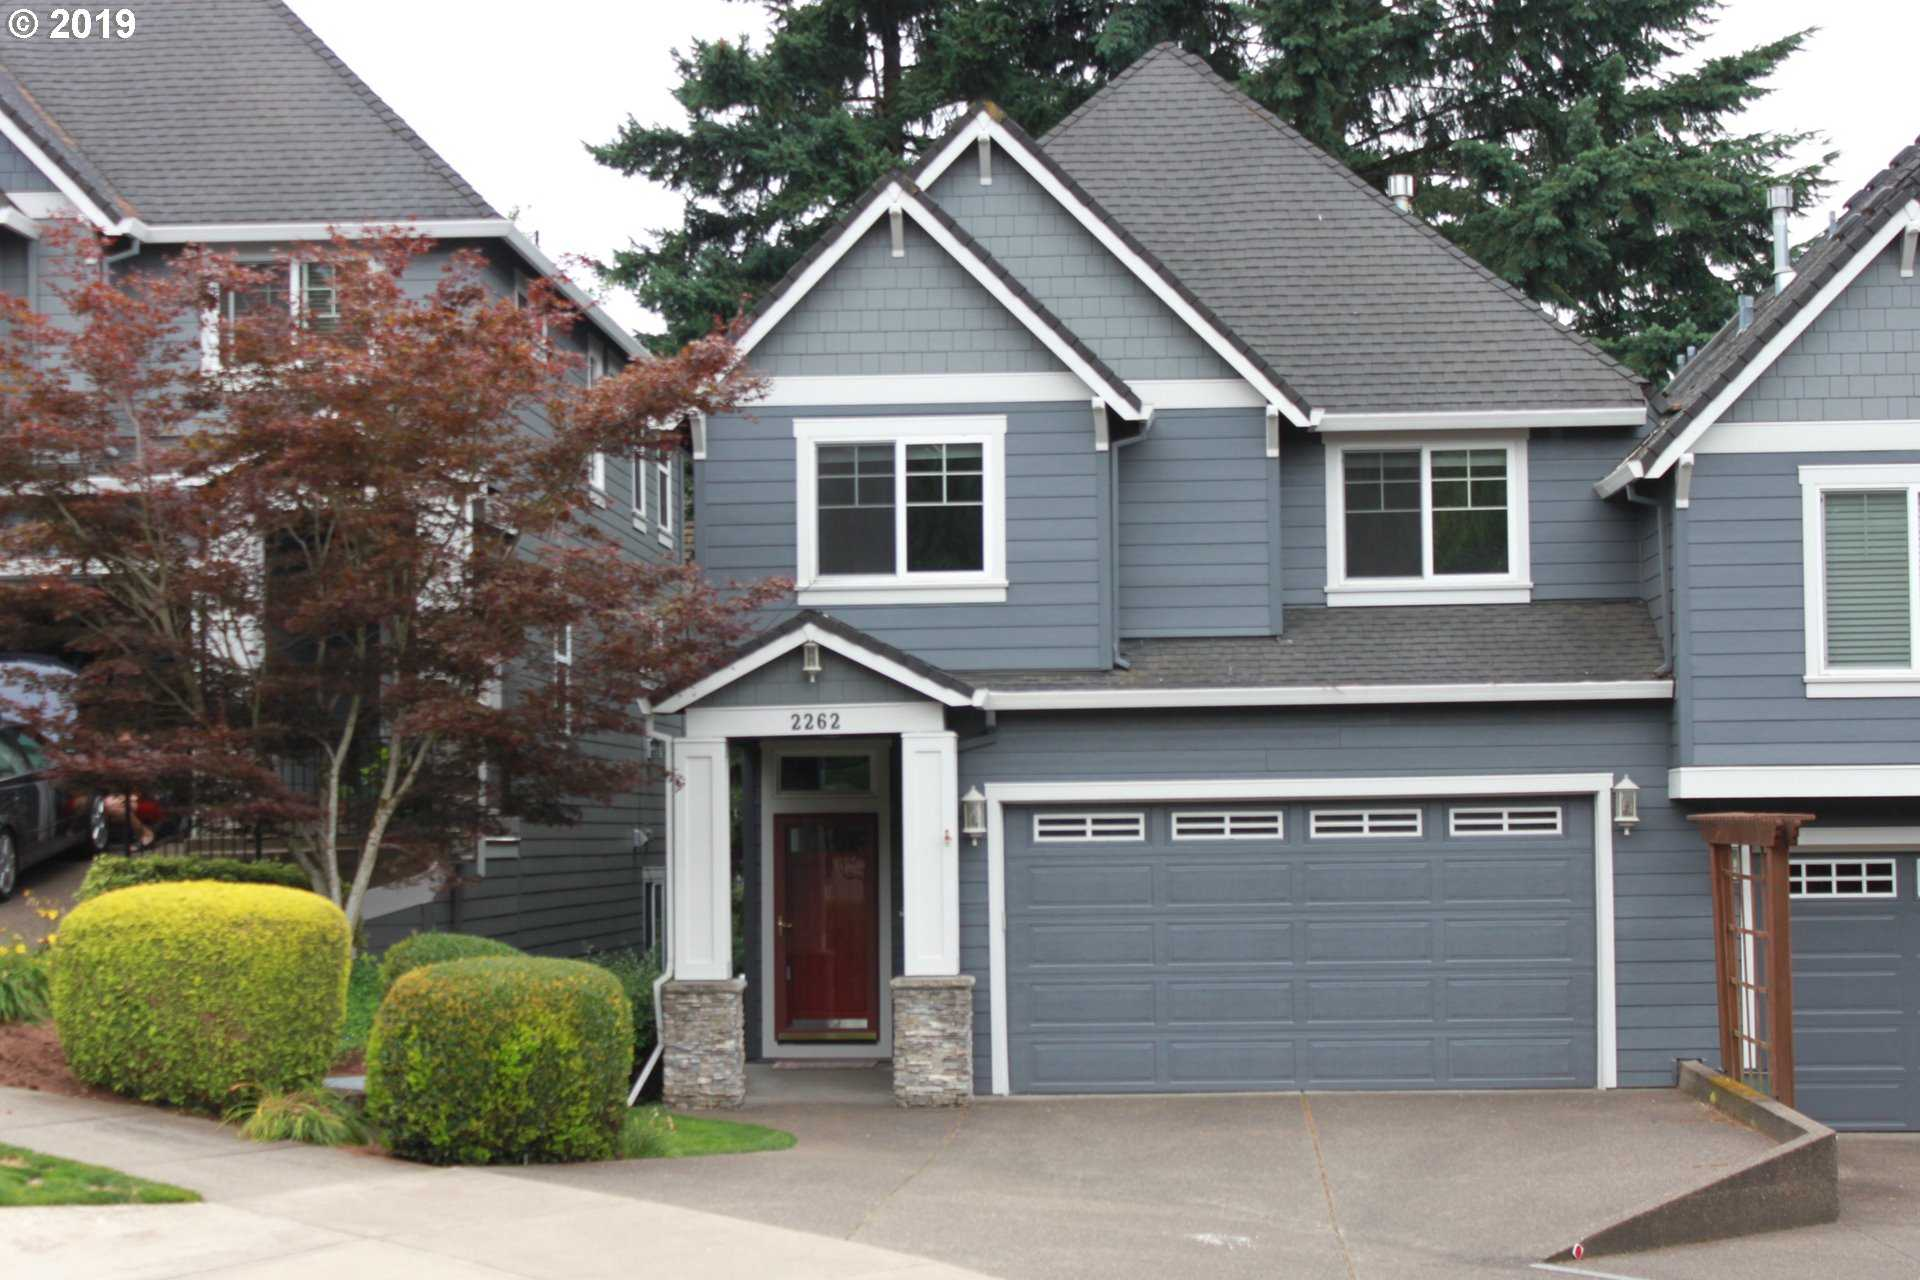 $525,000 - 4Br/4Ba -  for Sale in West Linn